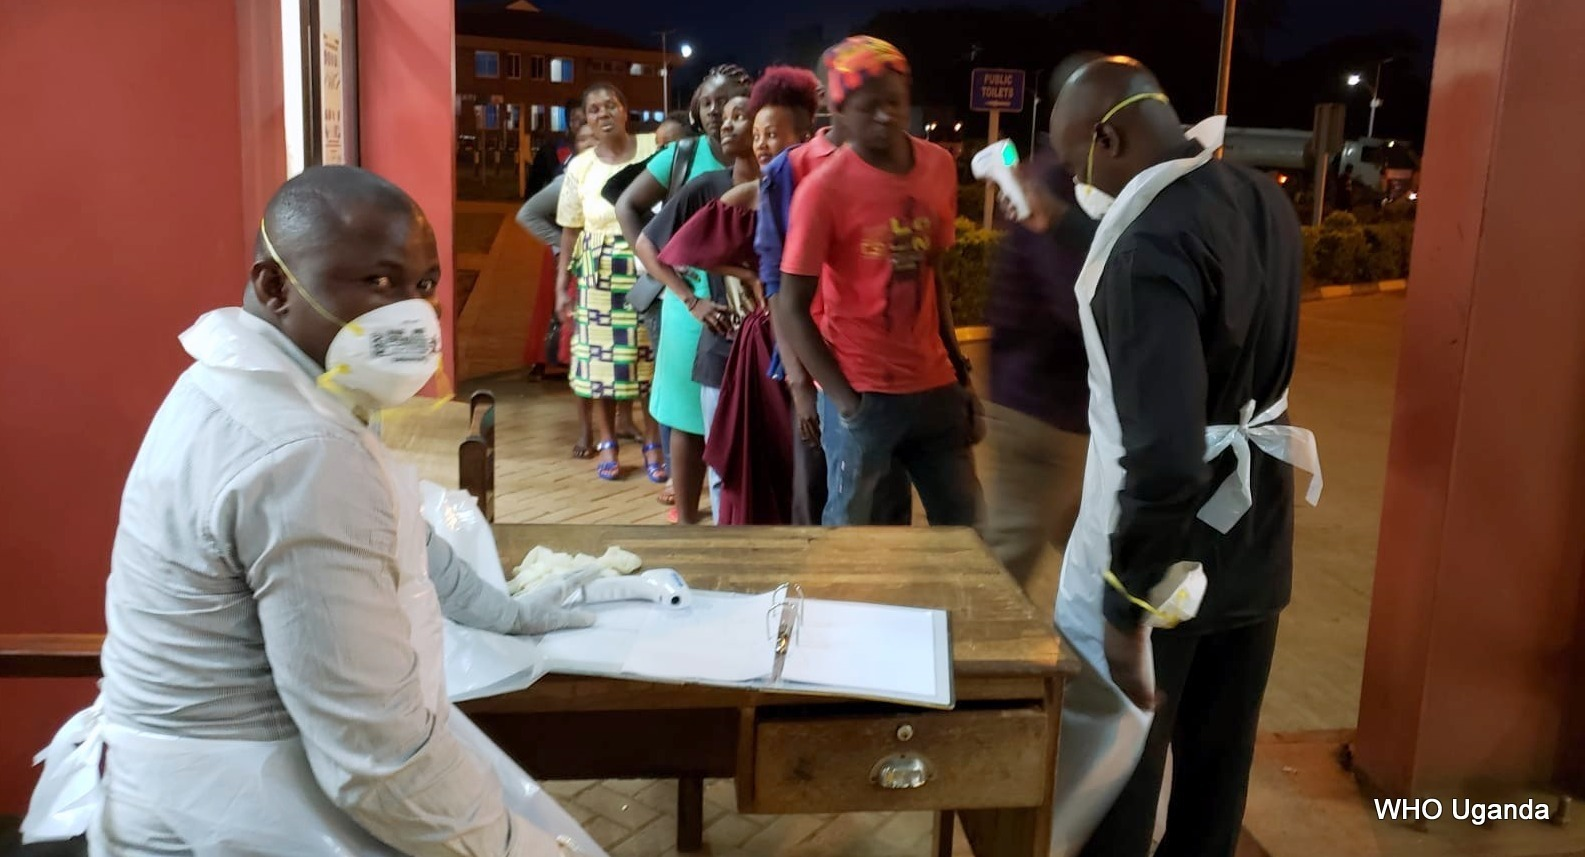 Health workers screen arrivals for Covid-19 (https://www.afro.who.int/news/uganda-uses-recent-outbreak-experience-prepare-coronavirus)